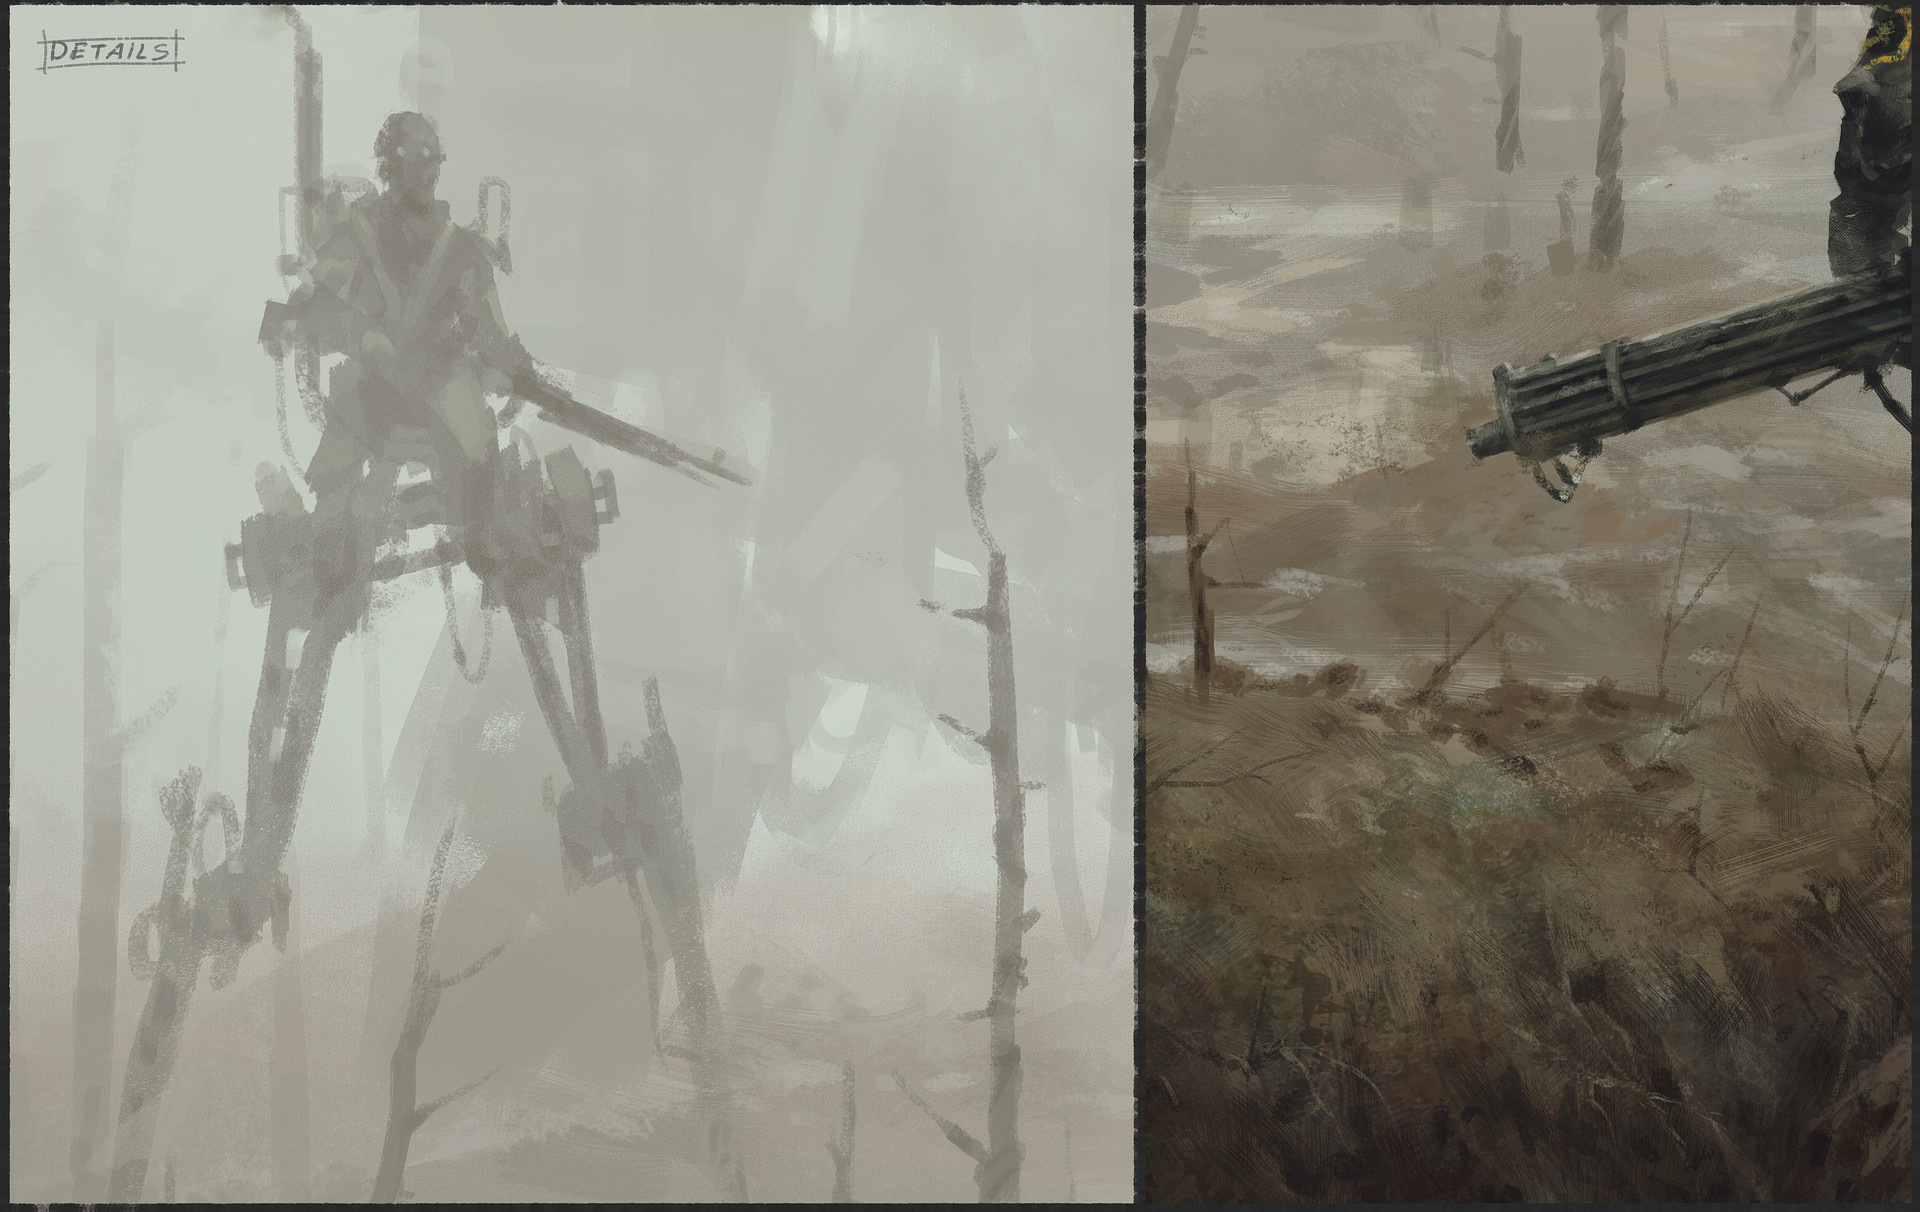 Jakub rozalski 1920 no mans land process4